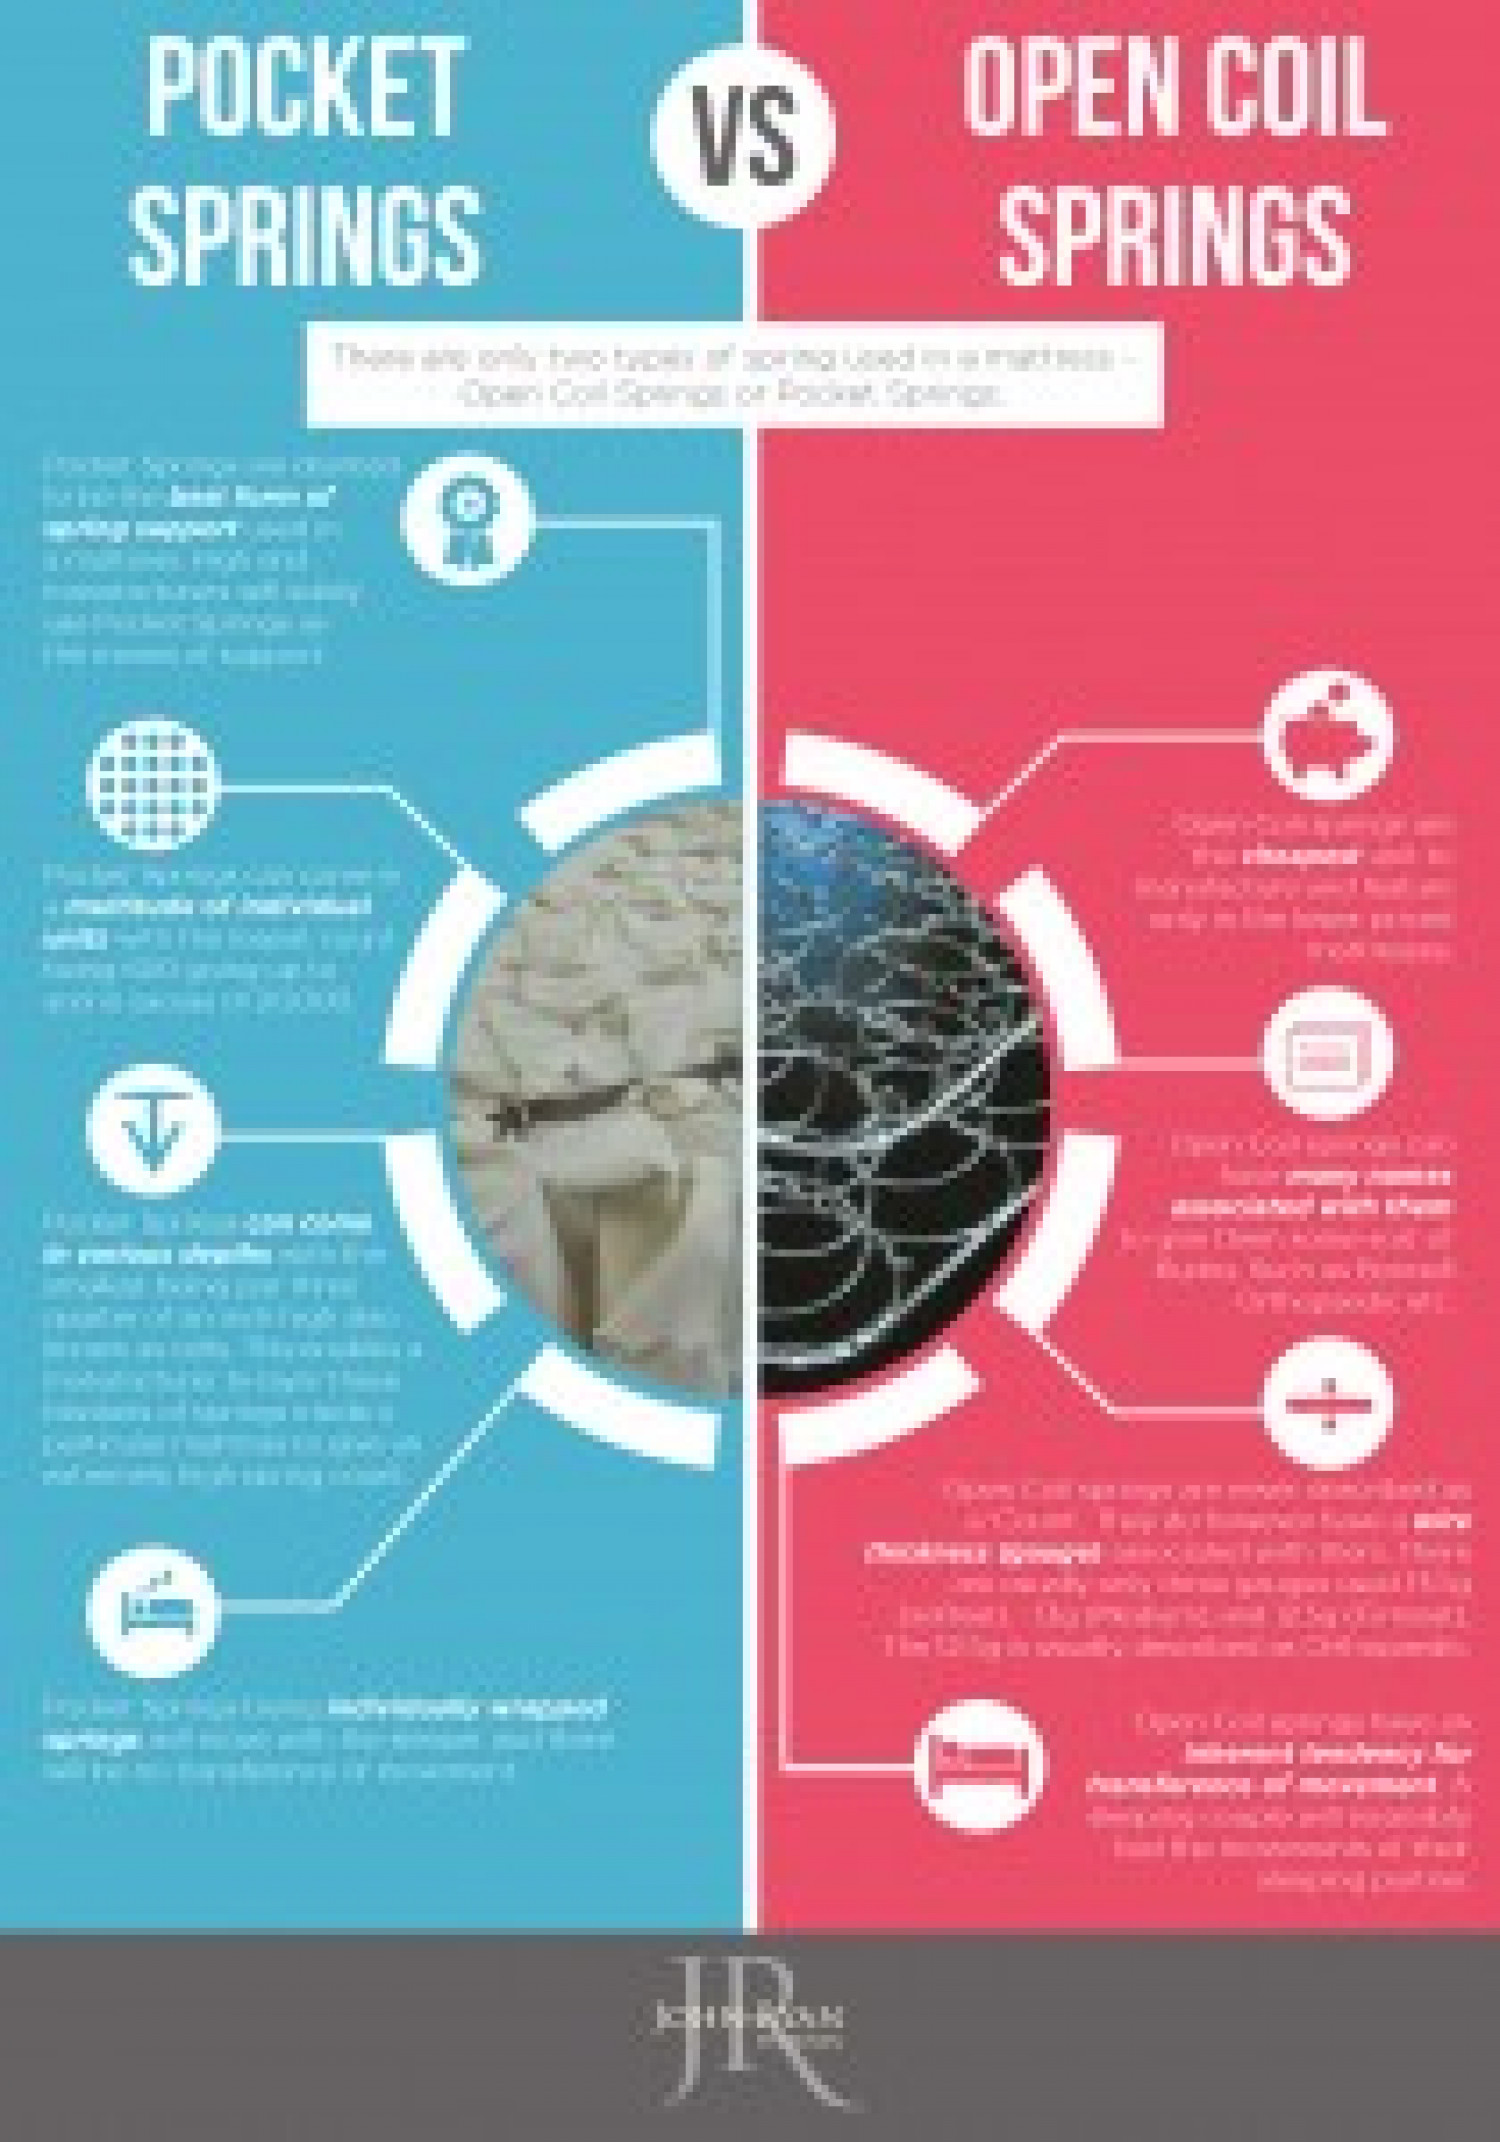 Pocket Springs Vs Open Coil Springs  Infographic